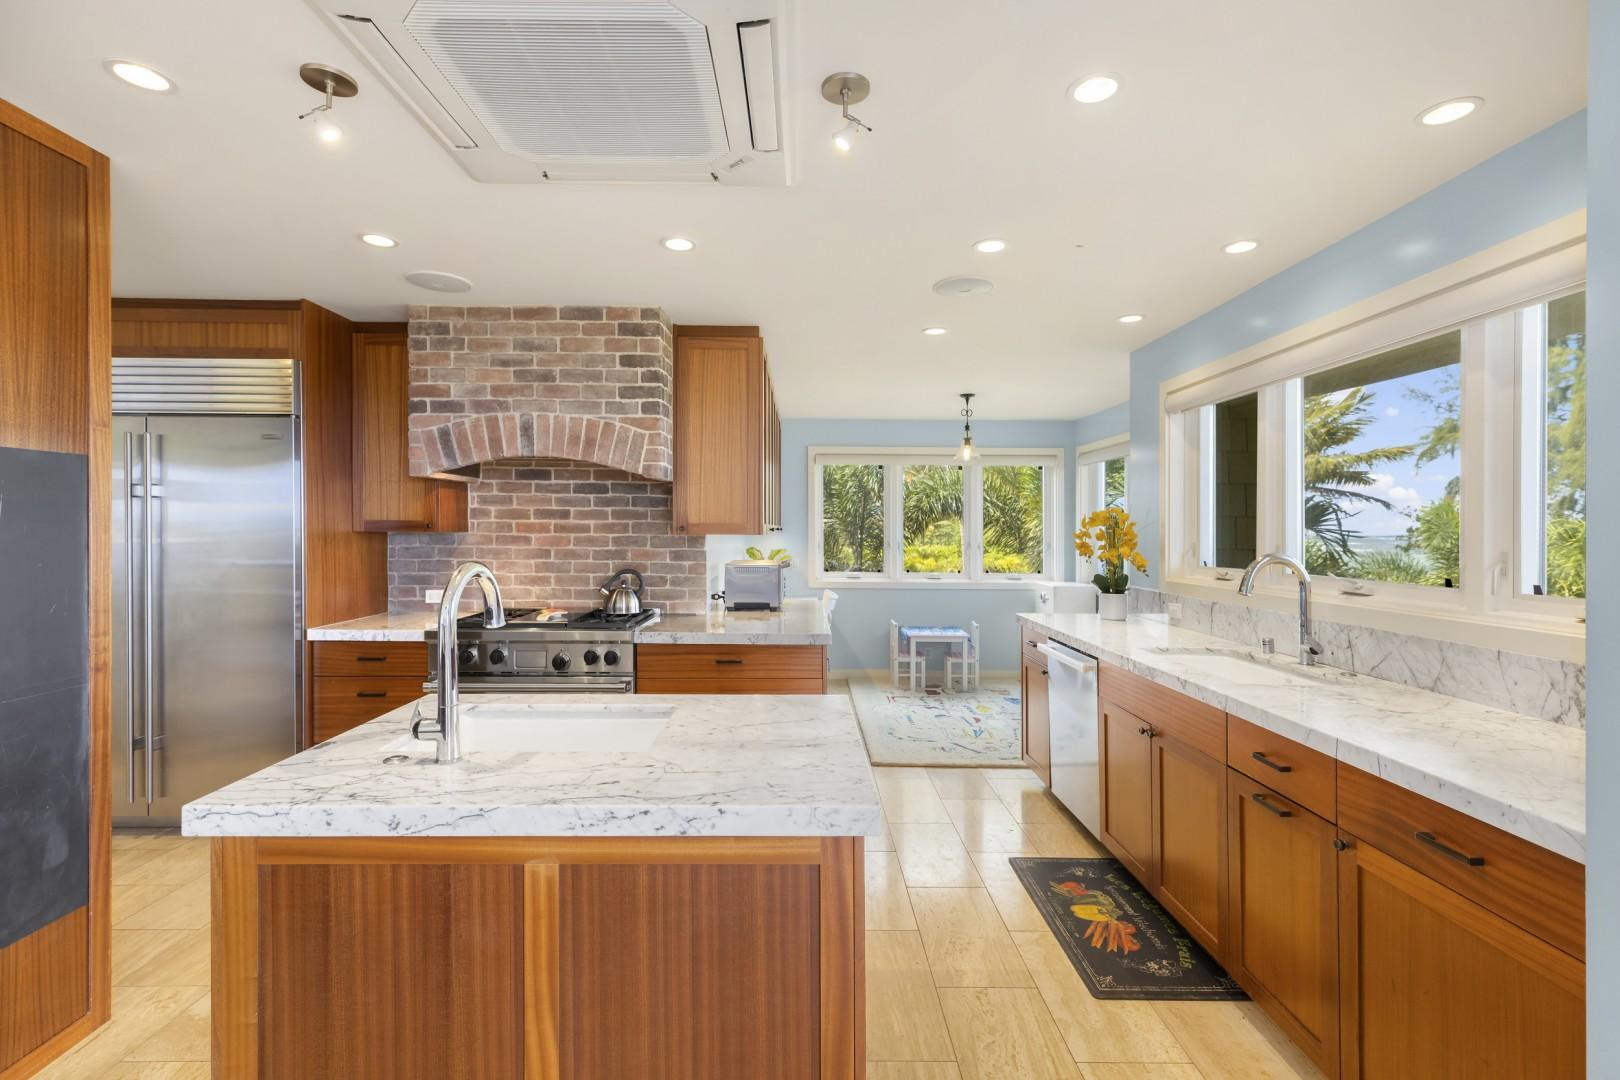 Fully equipped kitchen with high-end appliances.